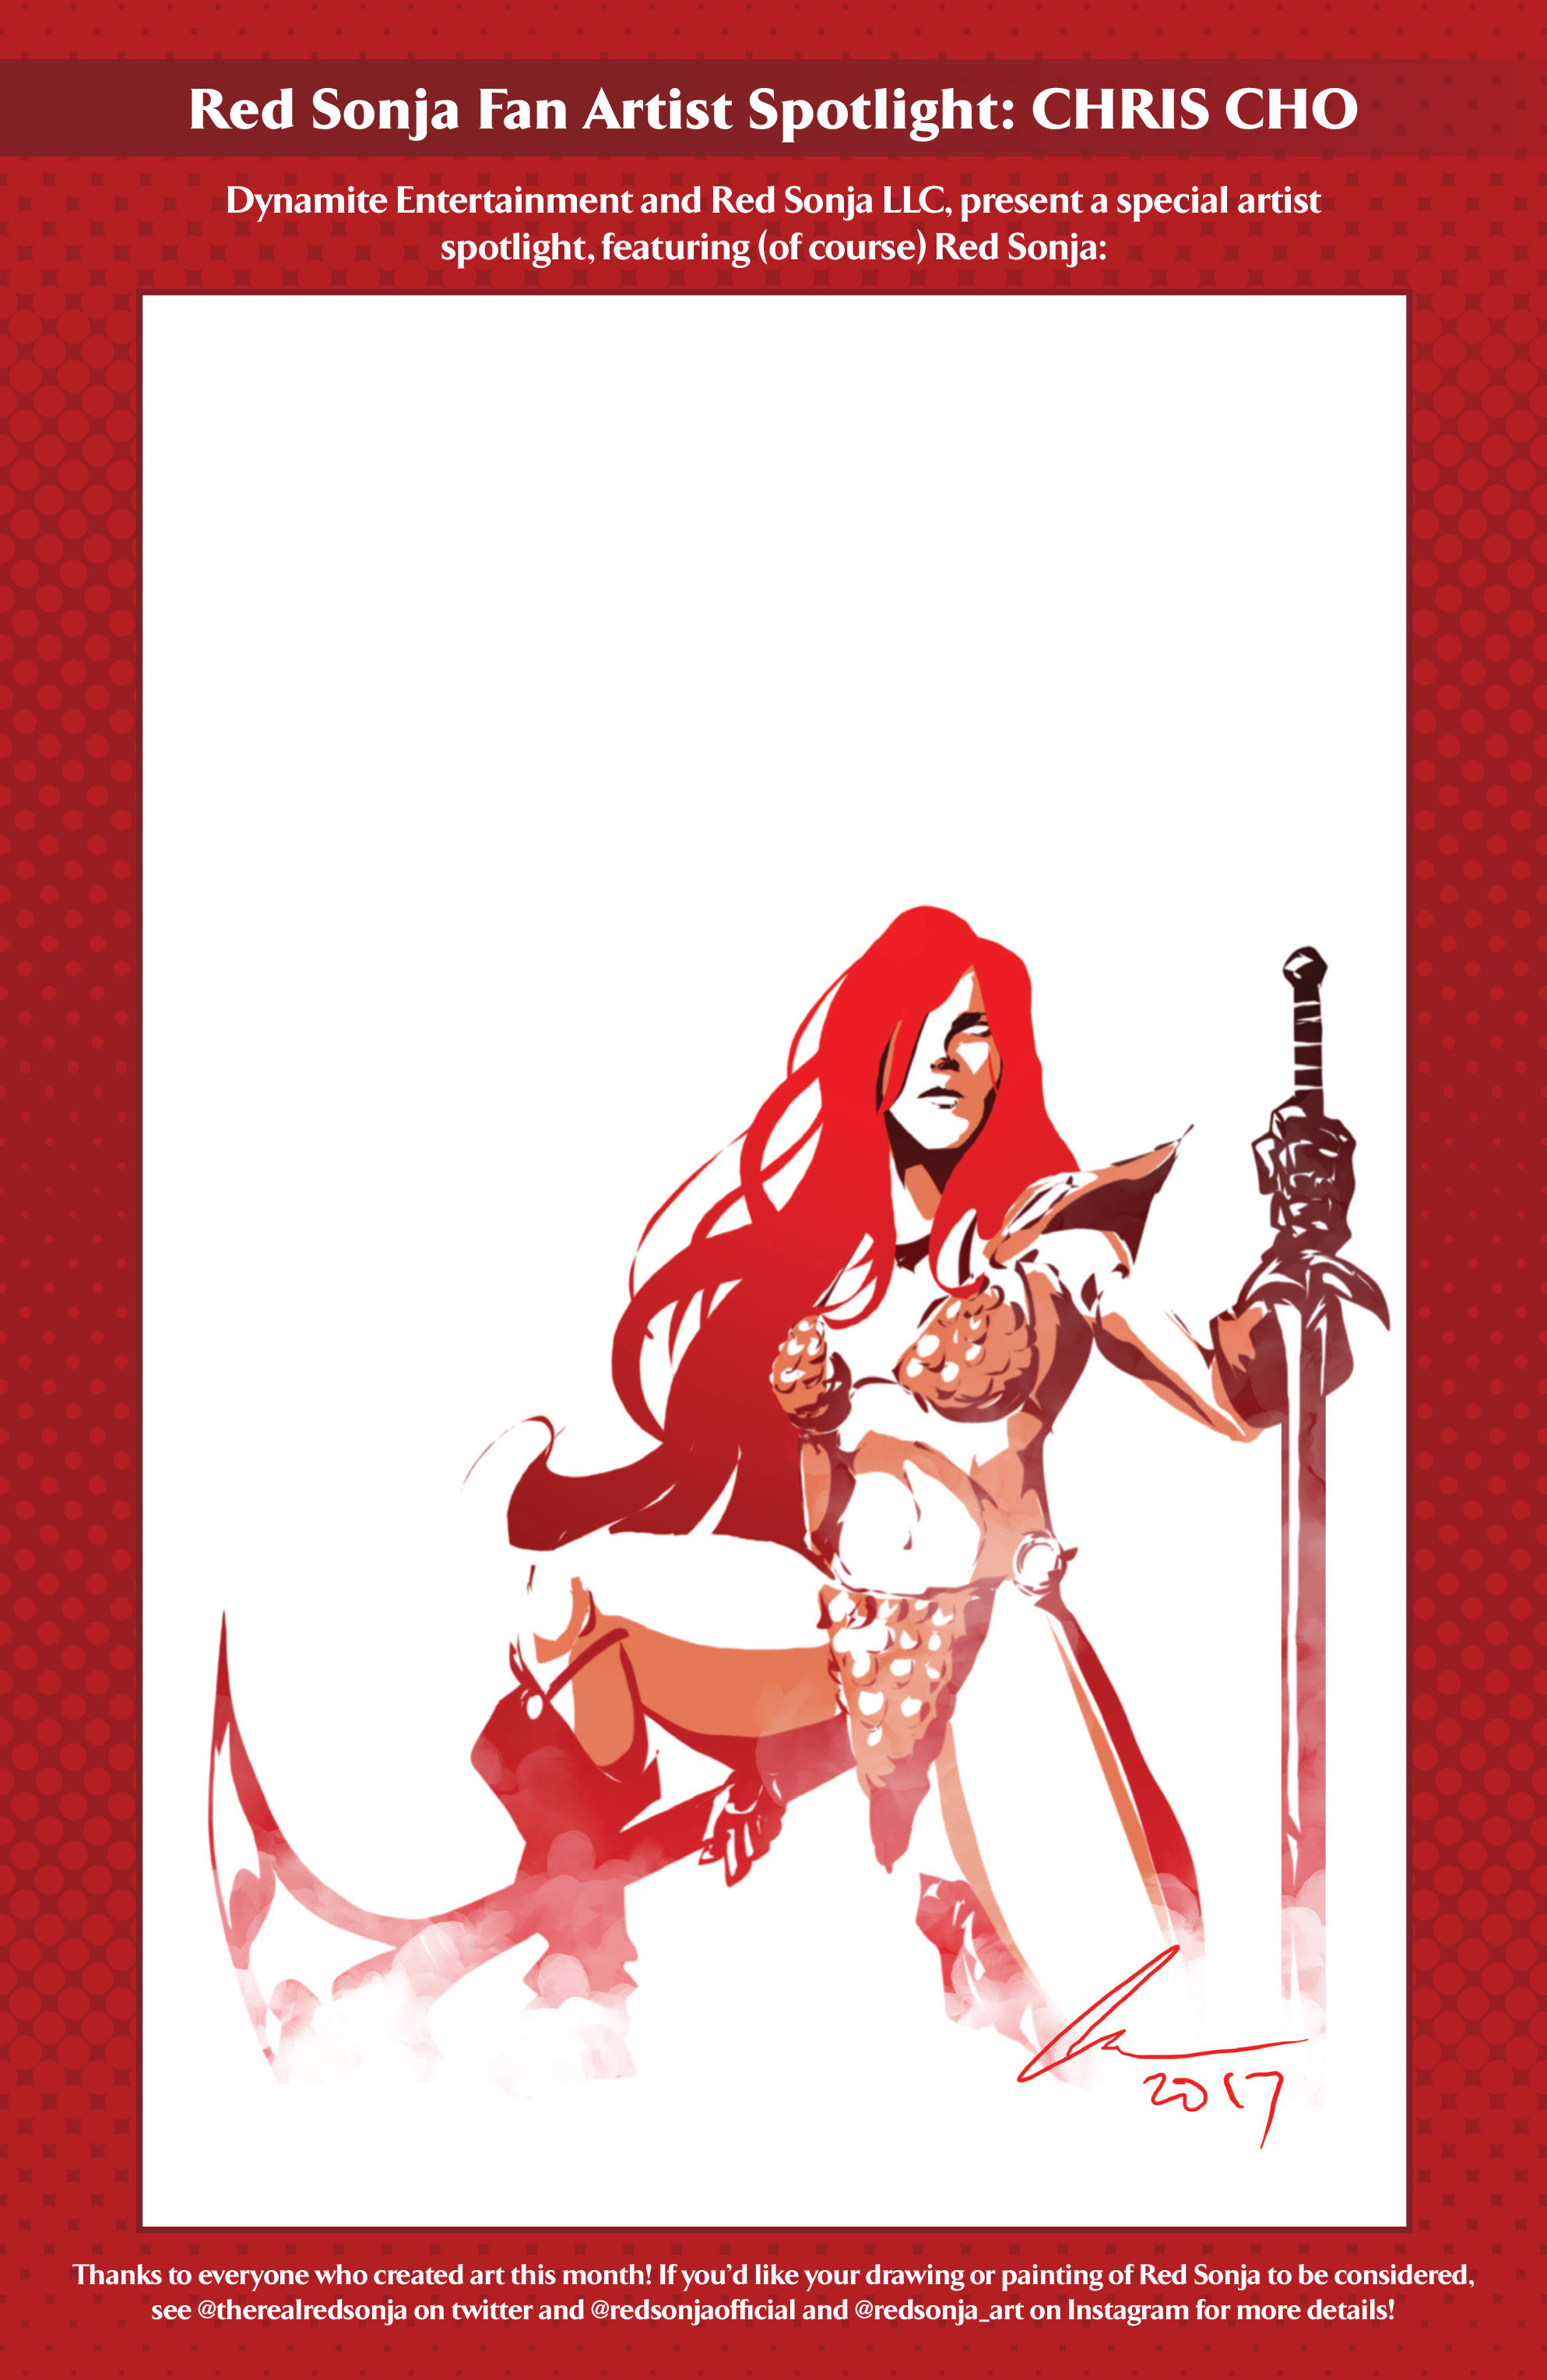 Read online Red Sonja Vol. 4 comic -  Issue #6 - 27